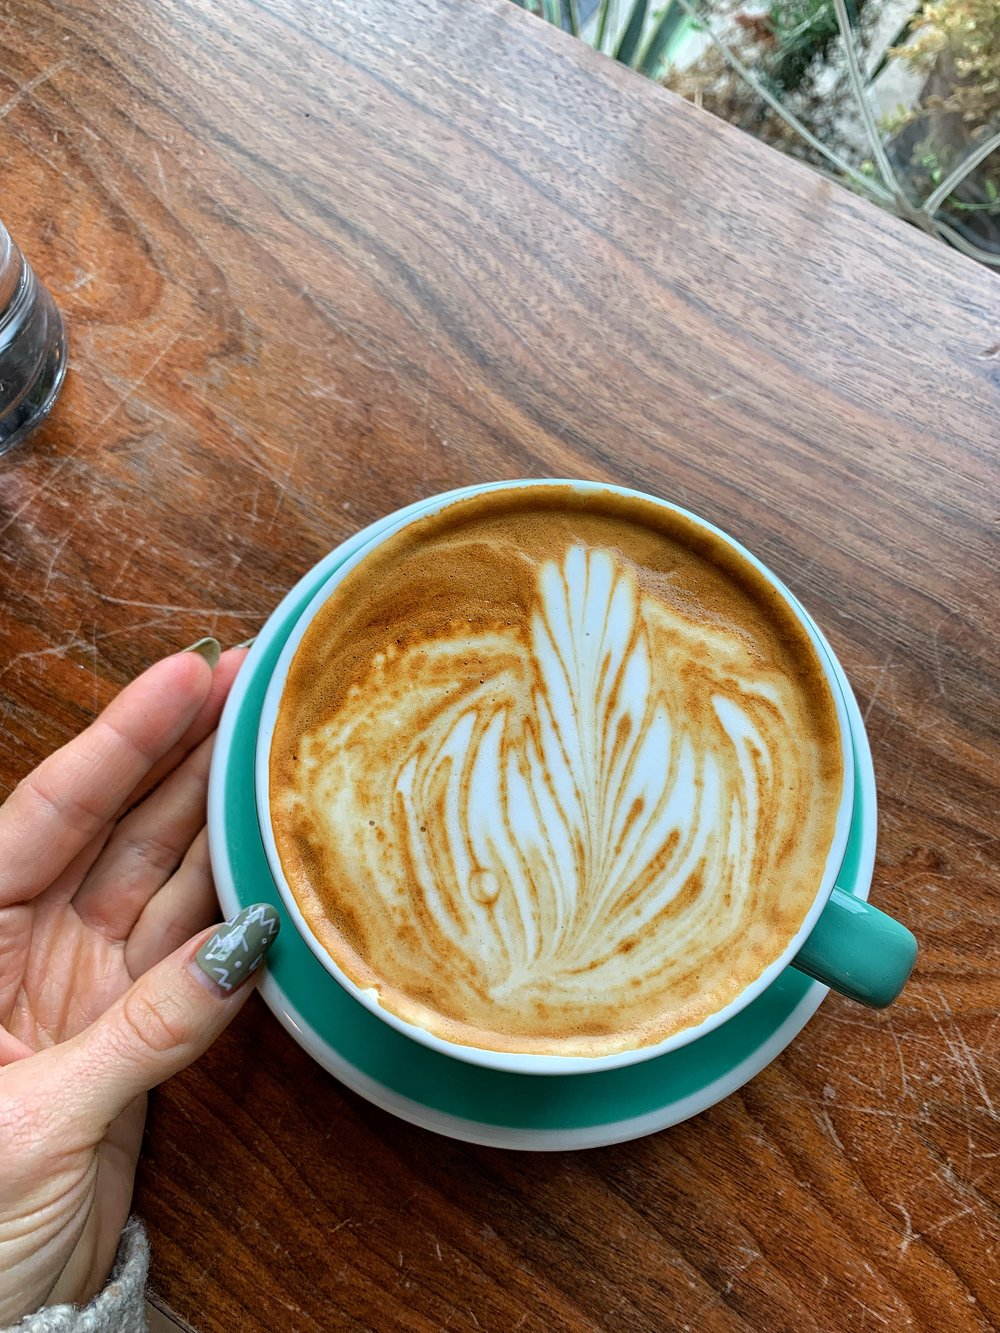 Almond milk latte from Holiday